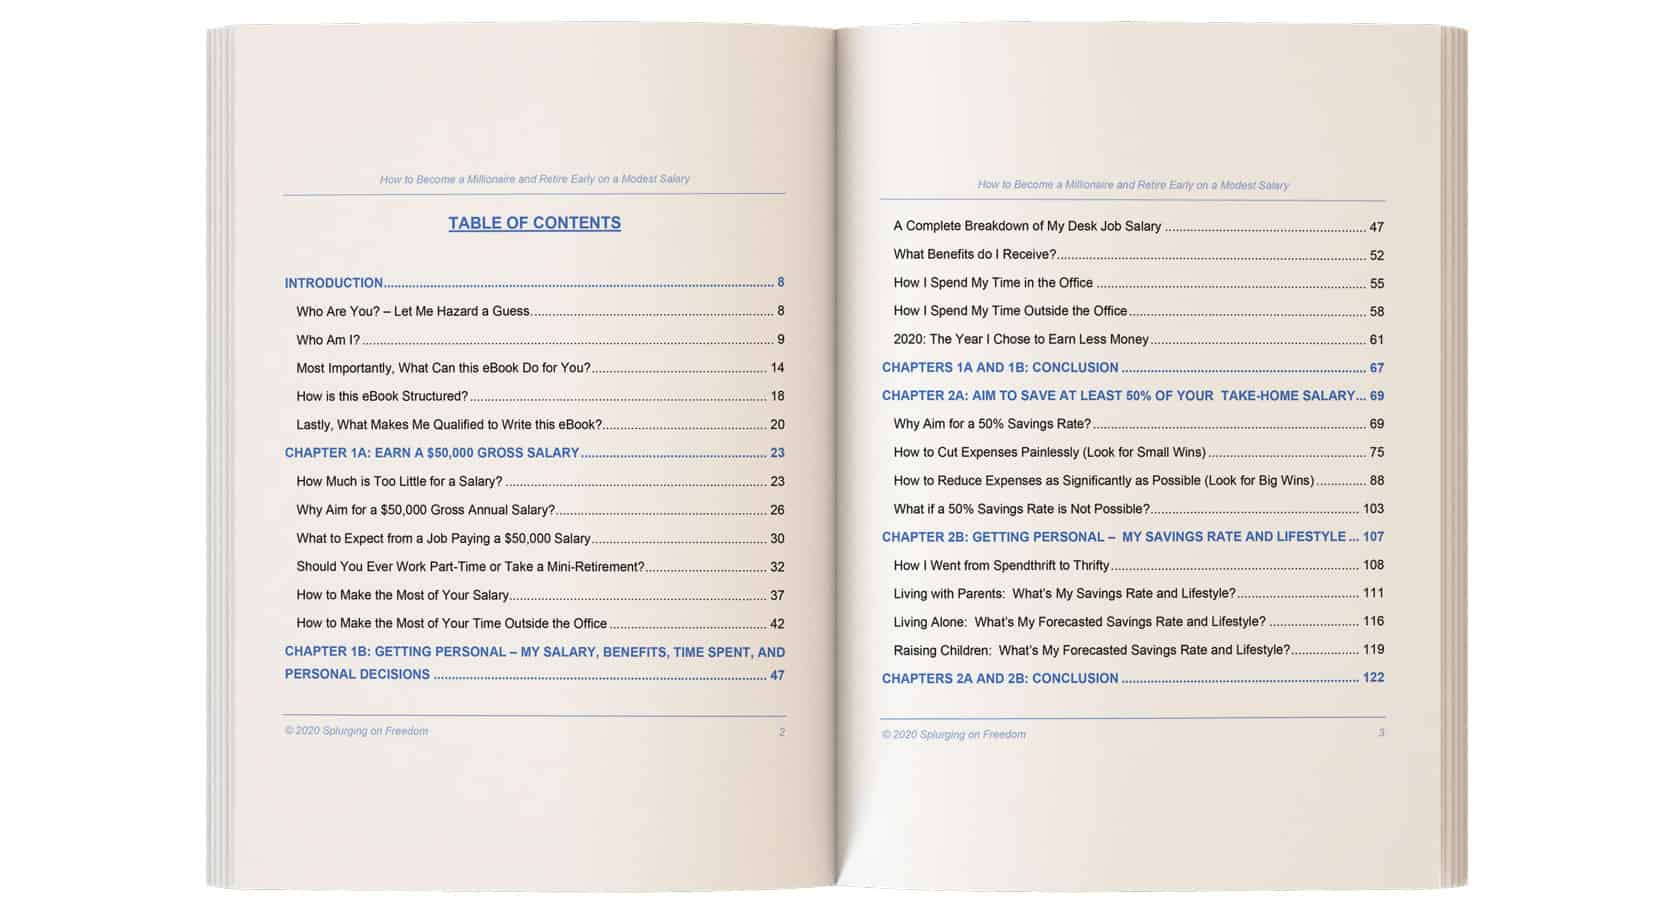 Table of Contents (Pages 1 and 2)